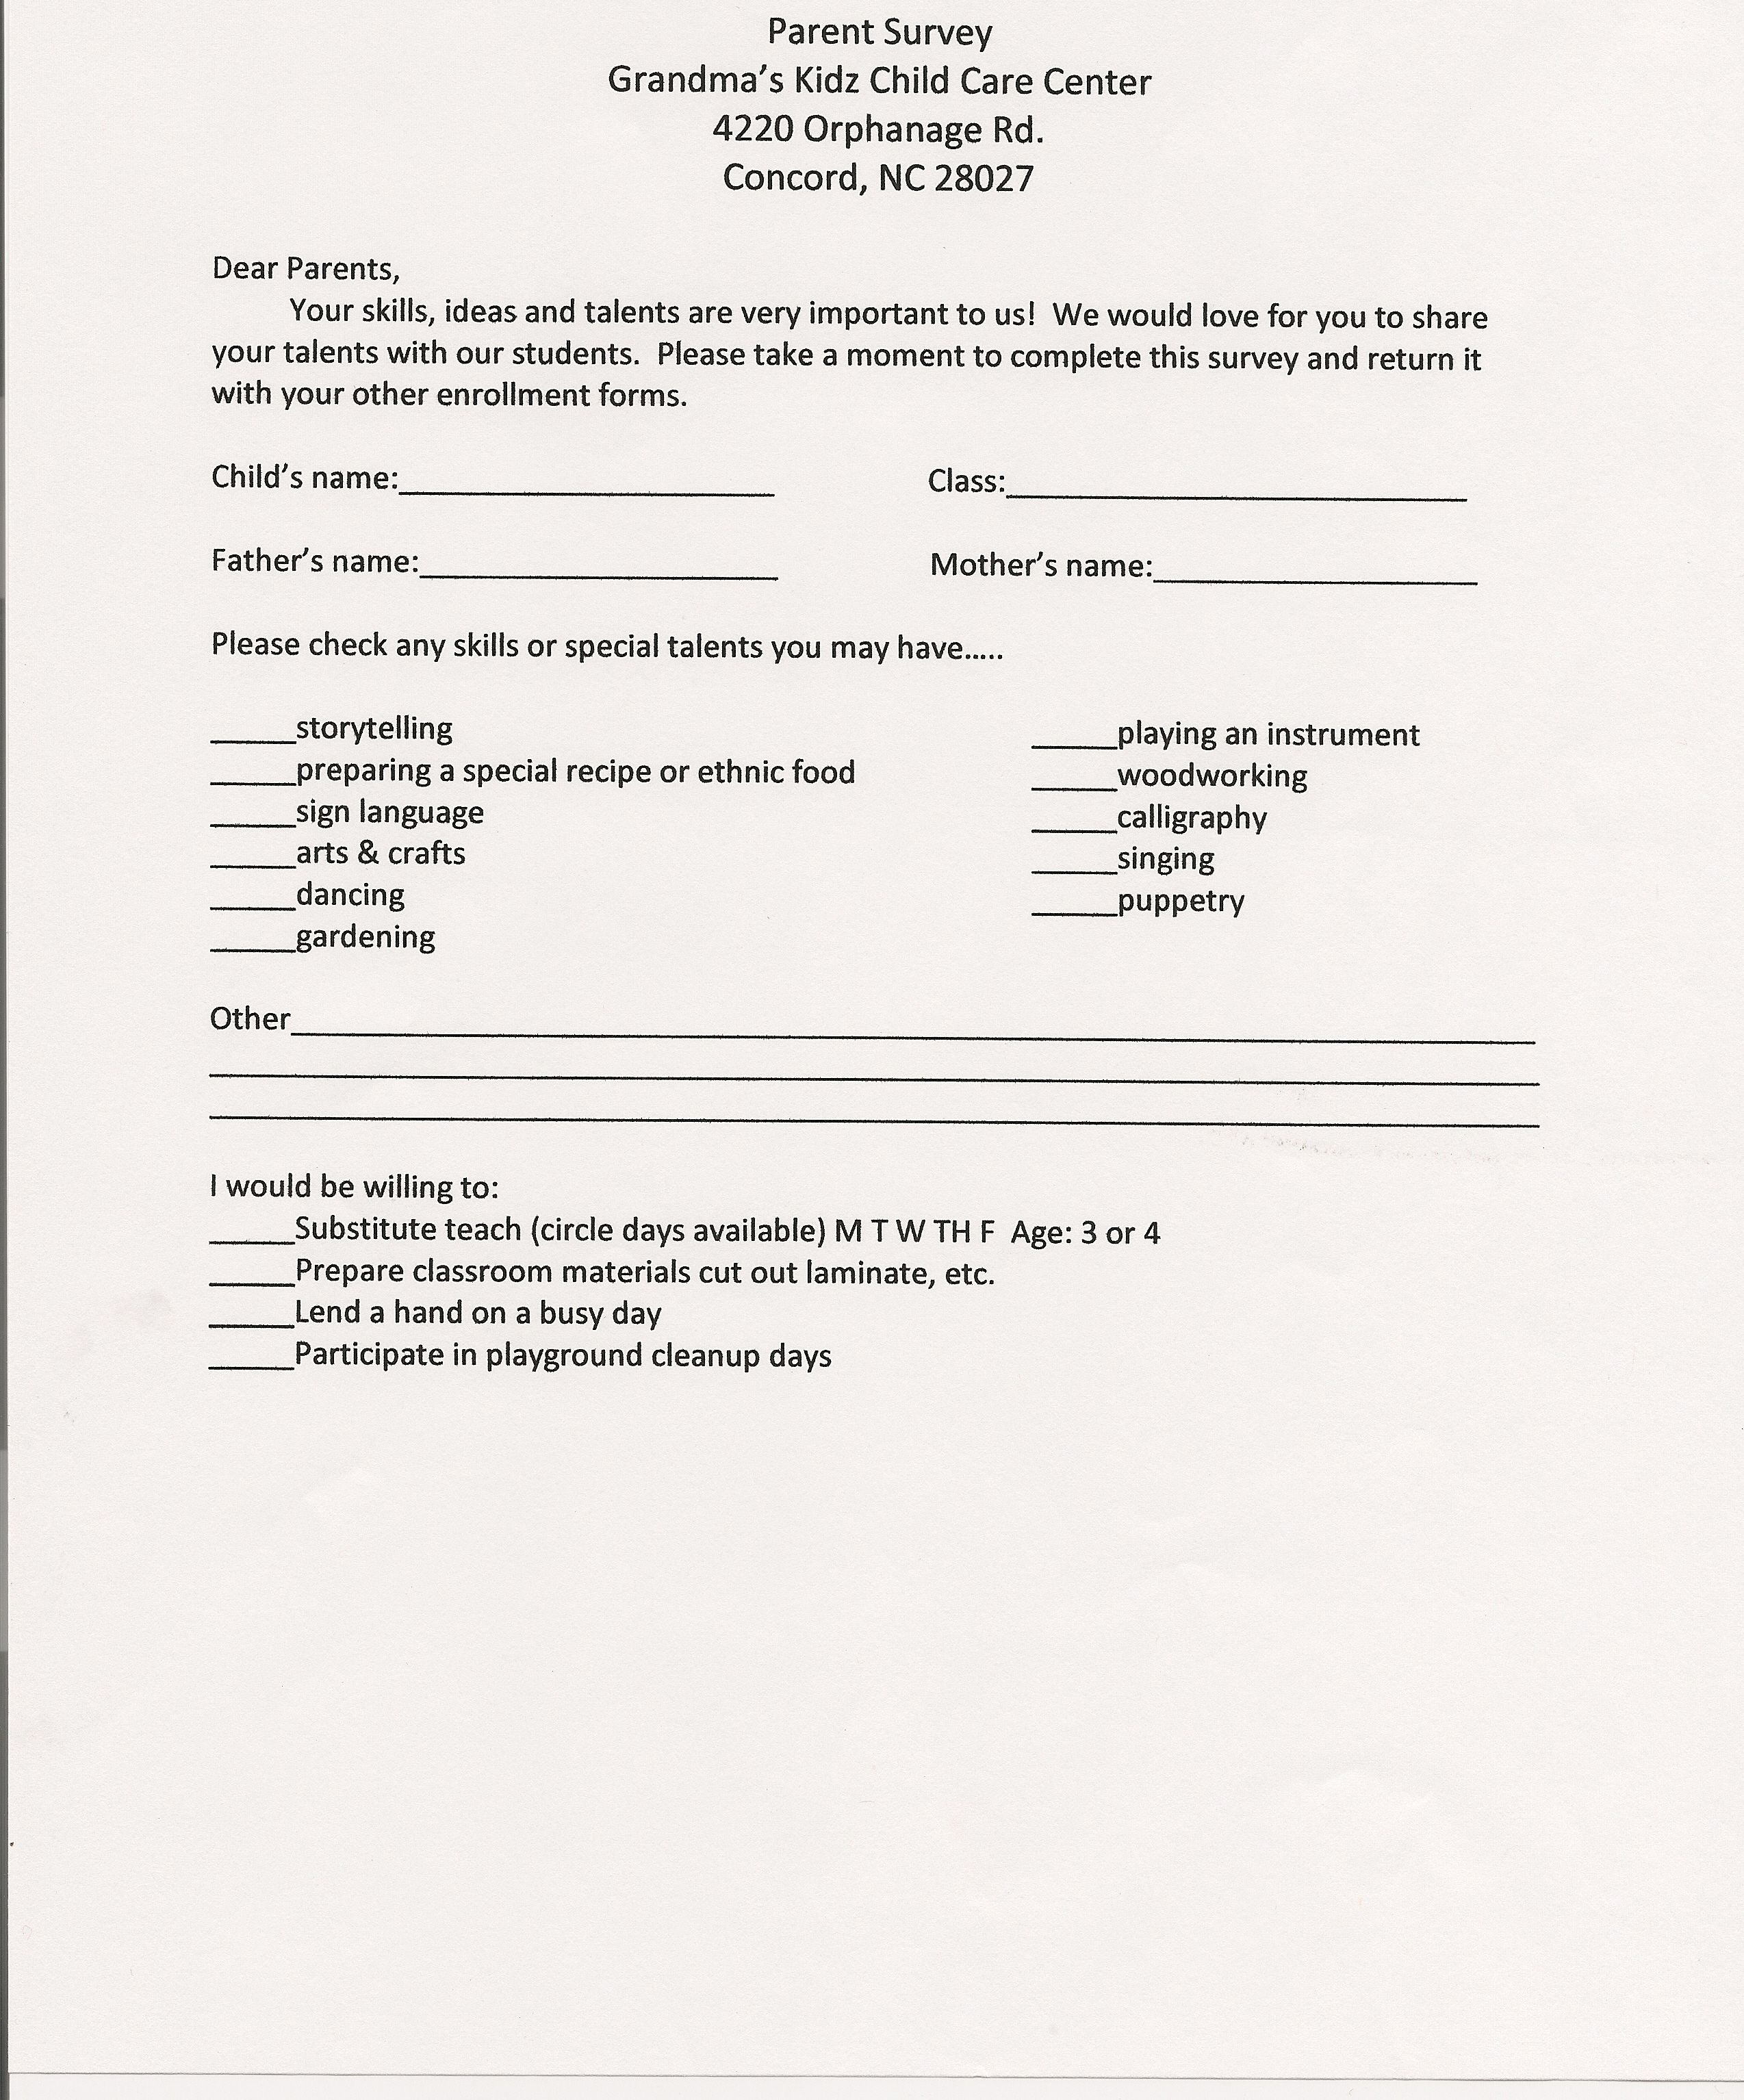 Parent Survey Forms Printable PreK | Preschool | Daycare | Child Care |  Concord NC